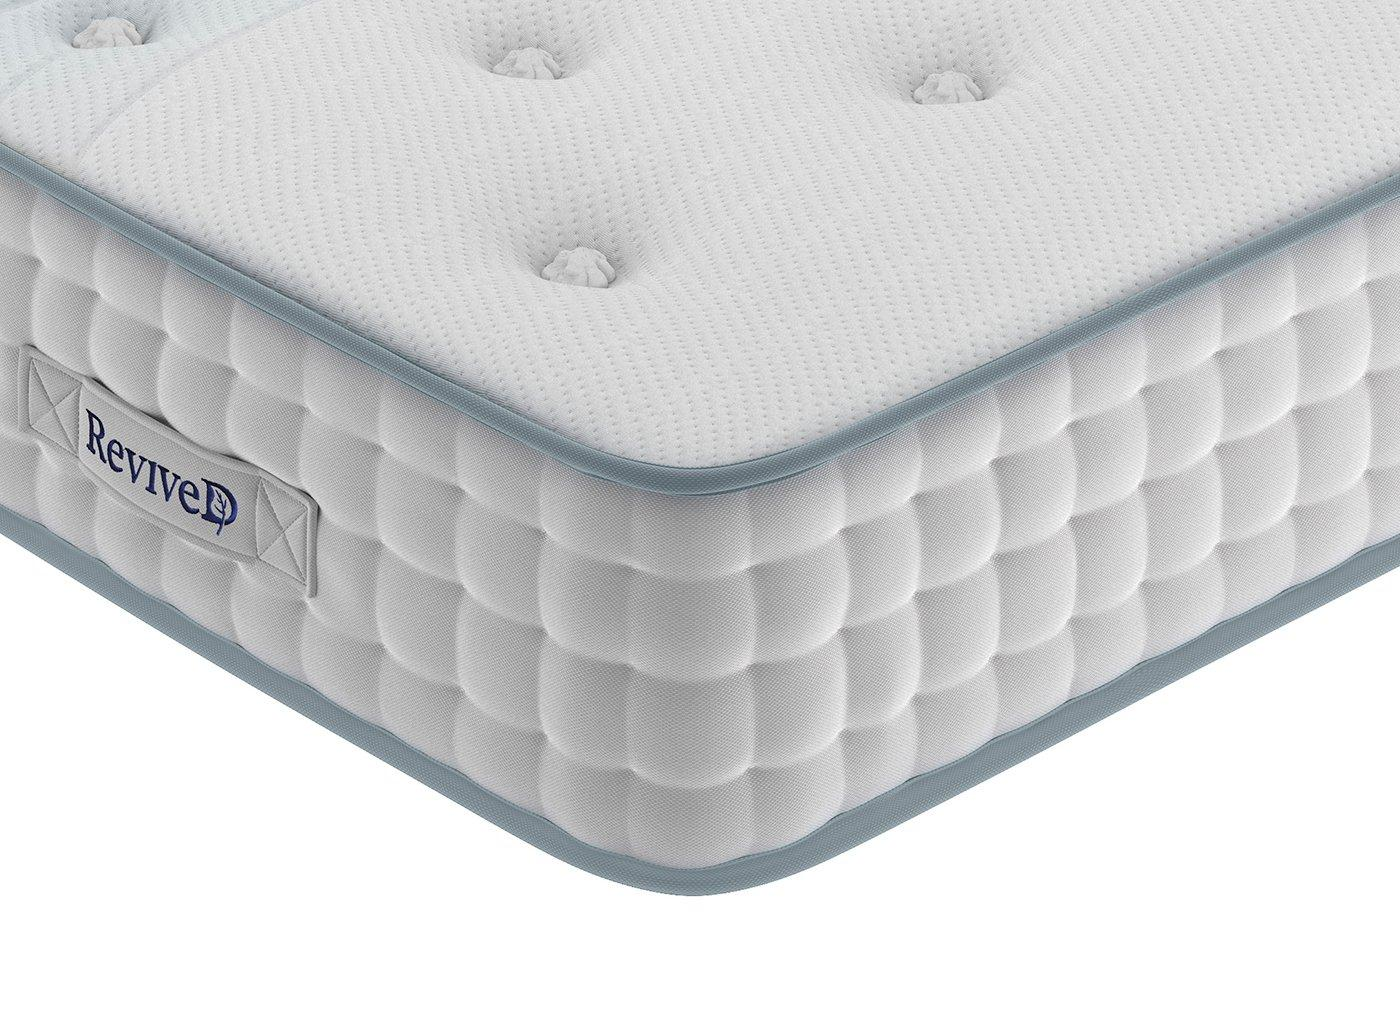 revived-lagoon-pocket-sprung-mattress